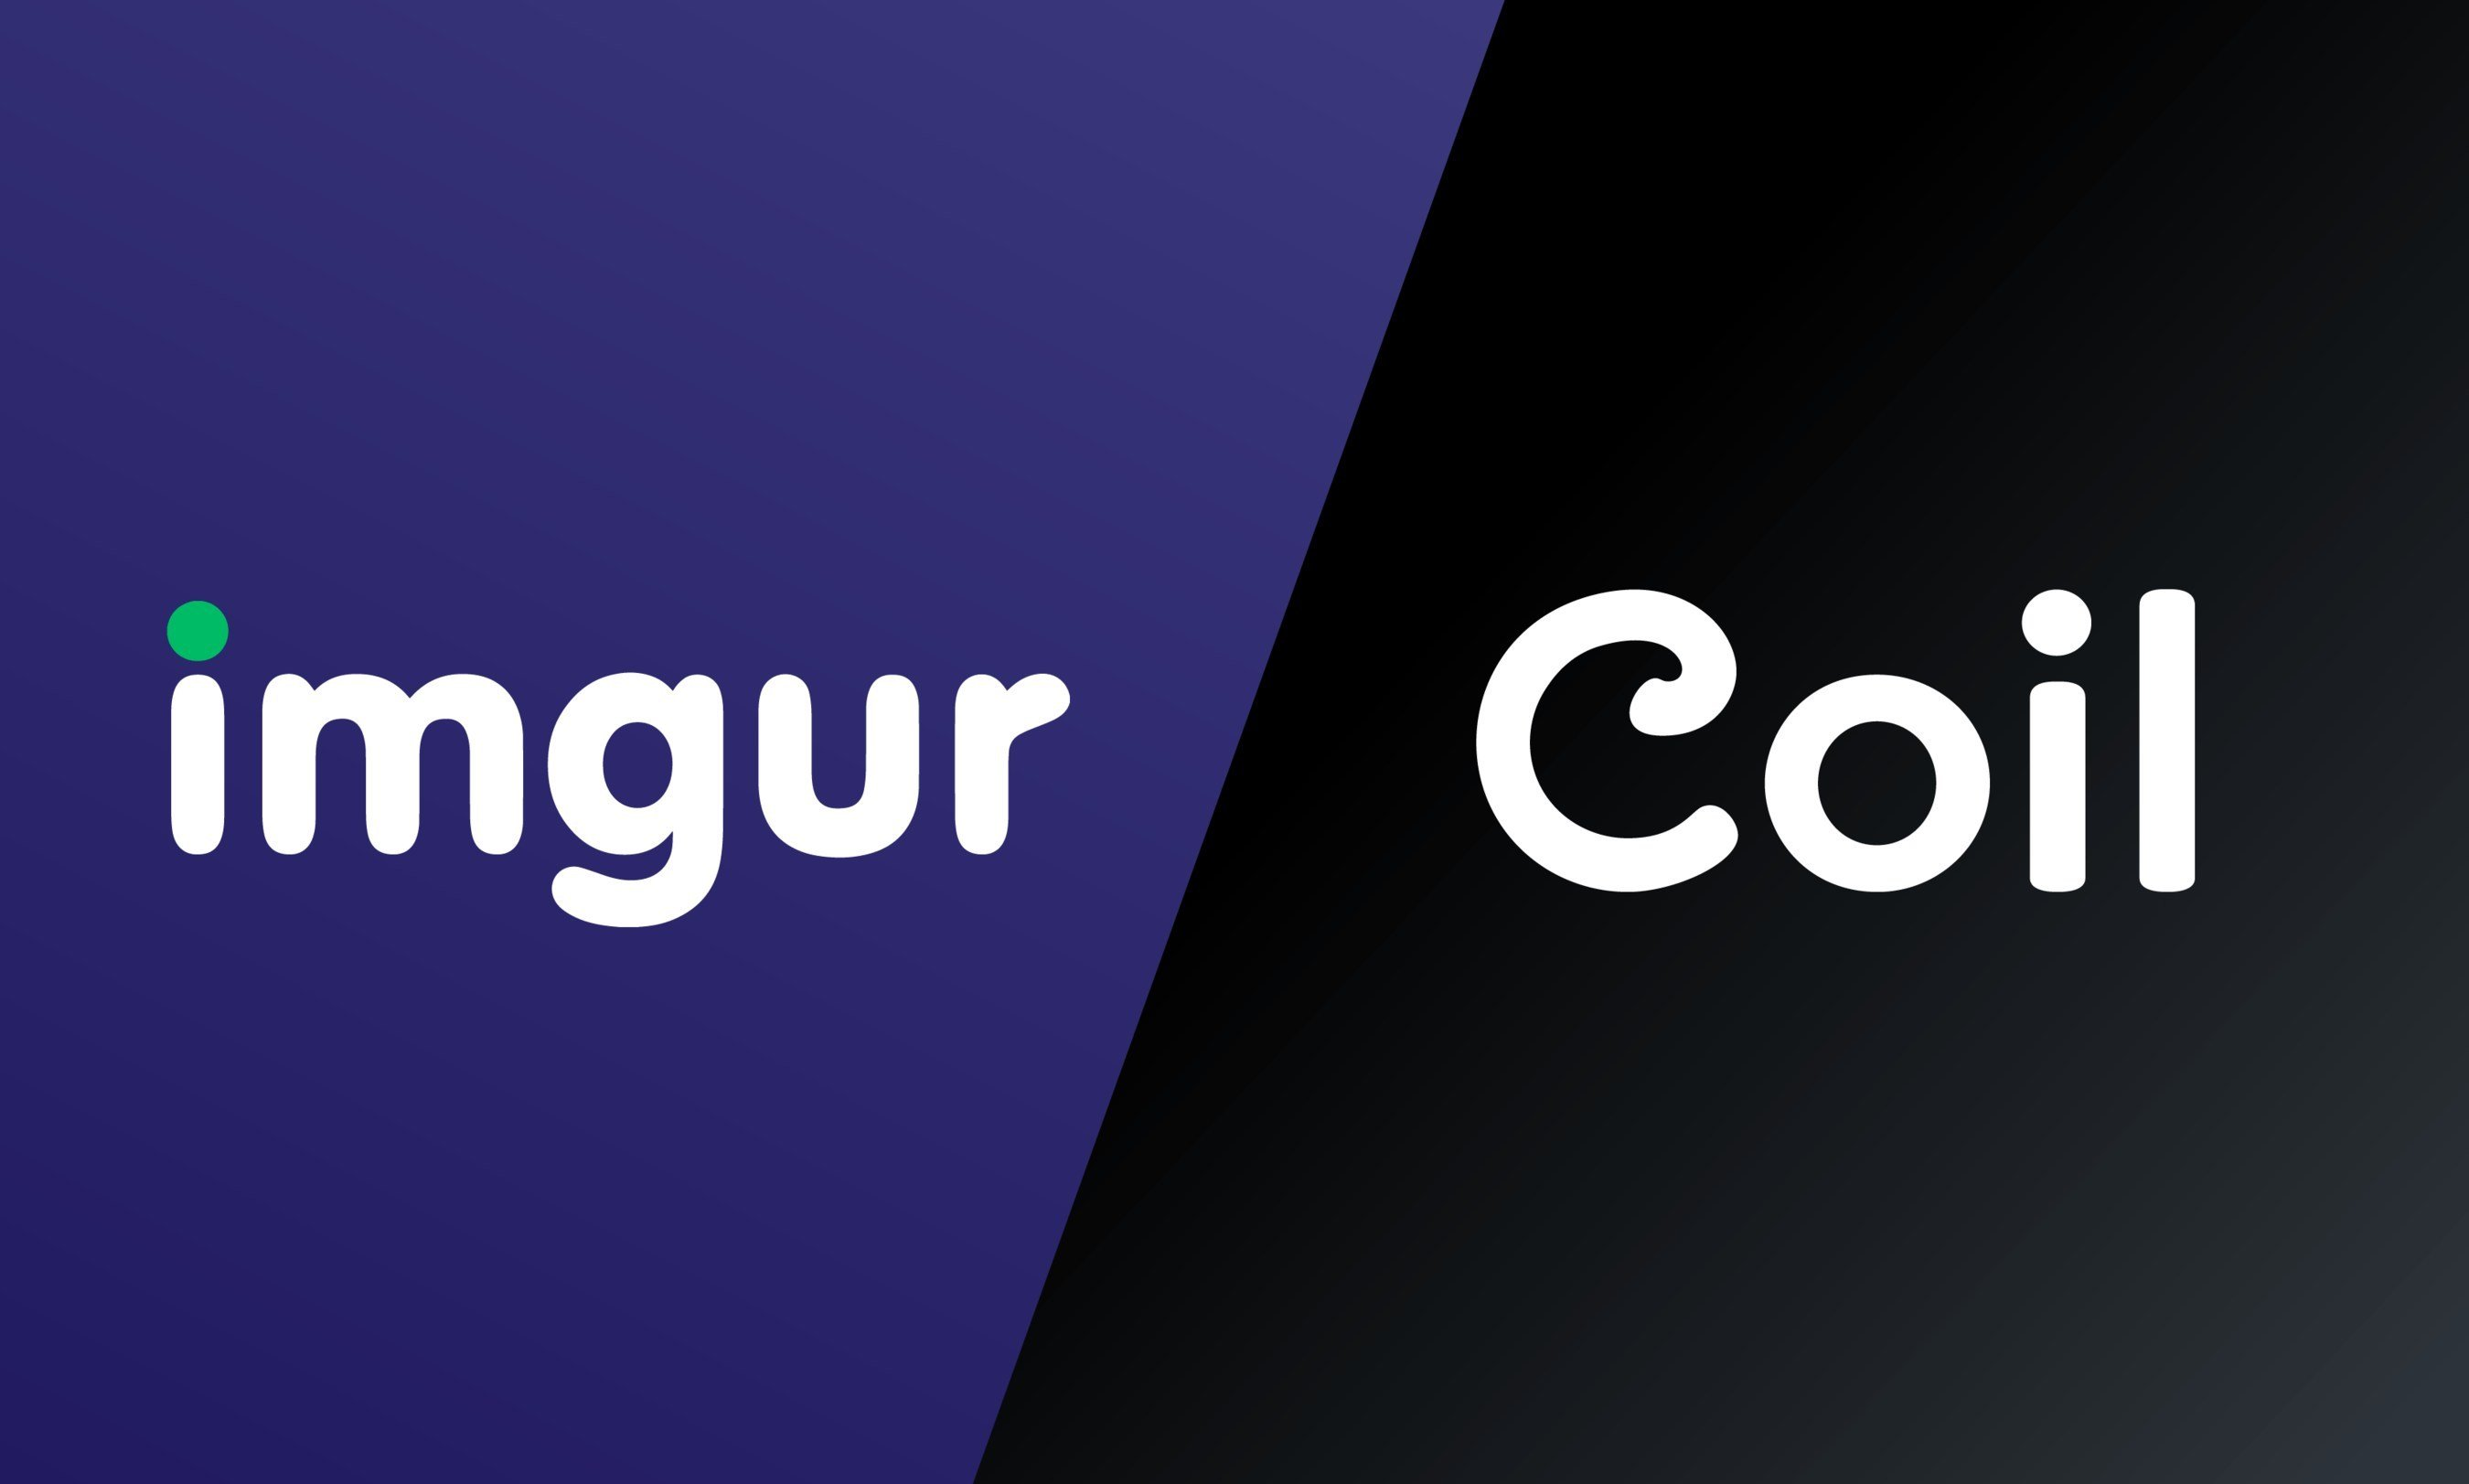 Coil invested in Imgur